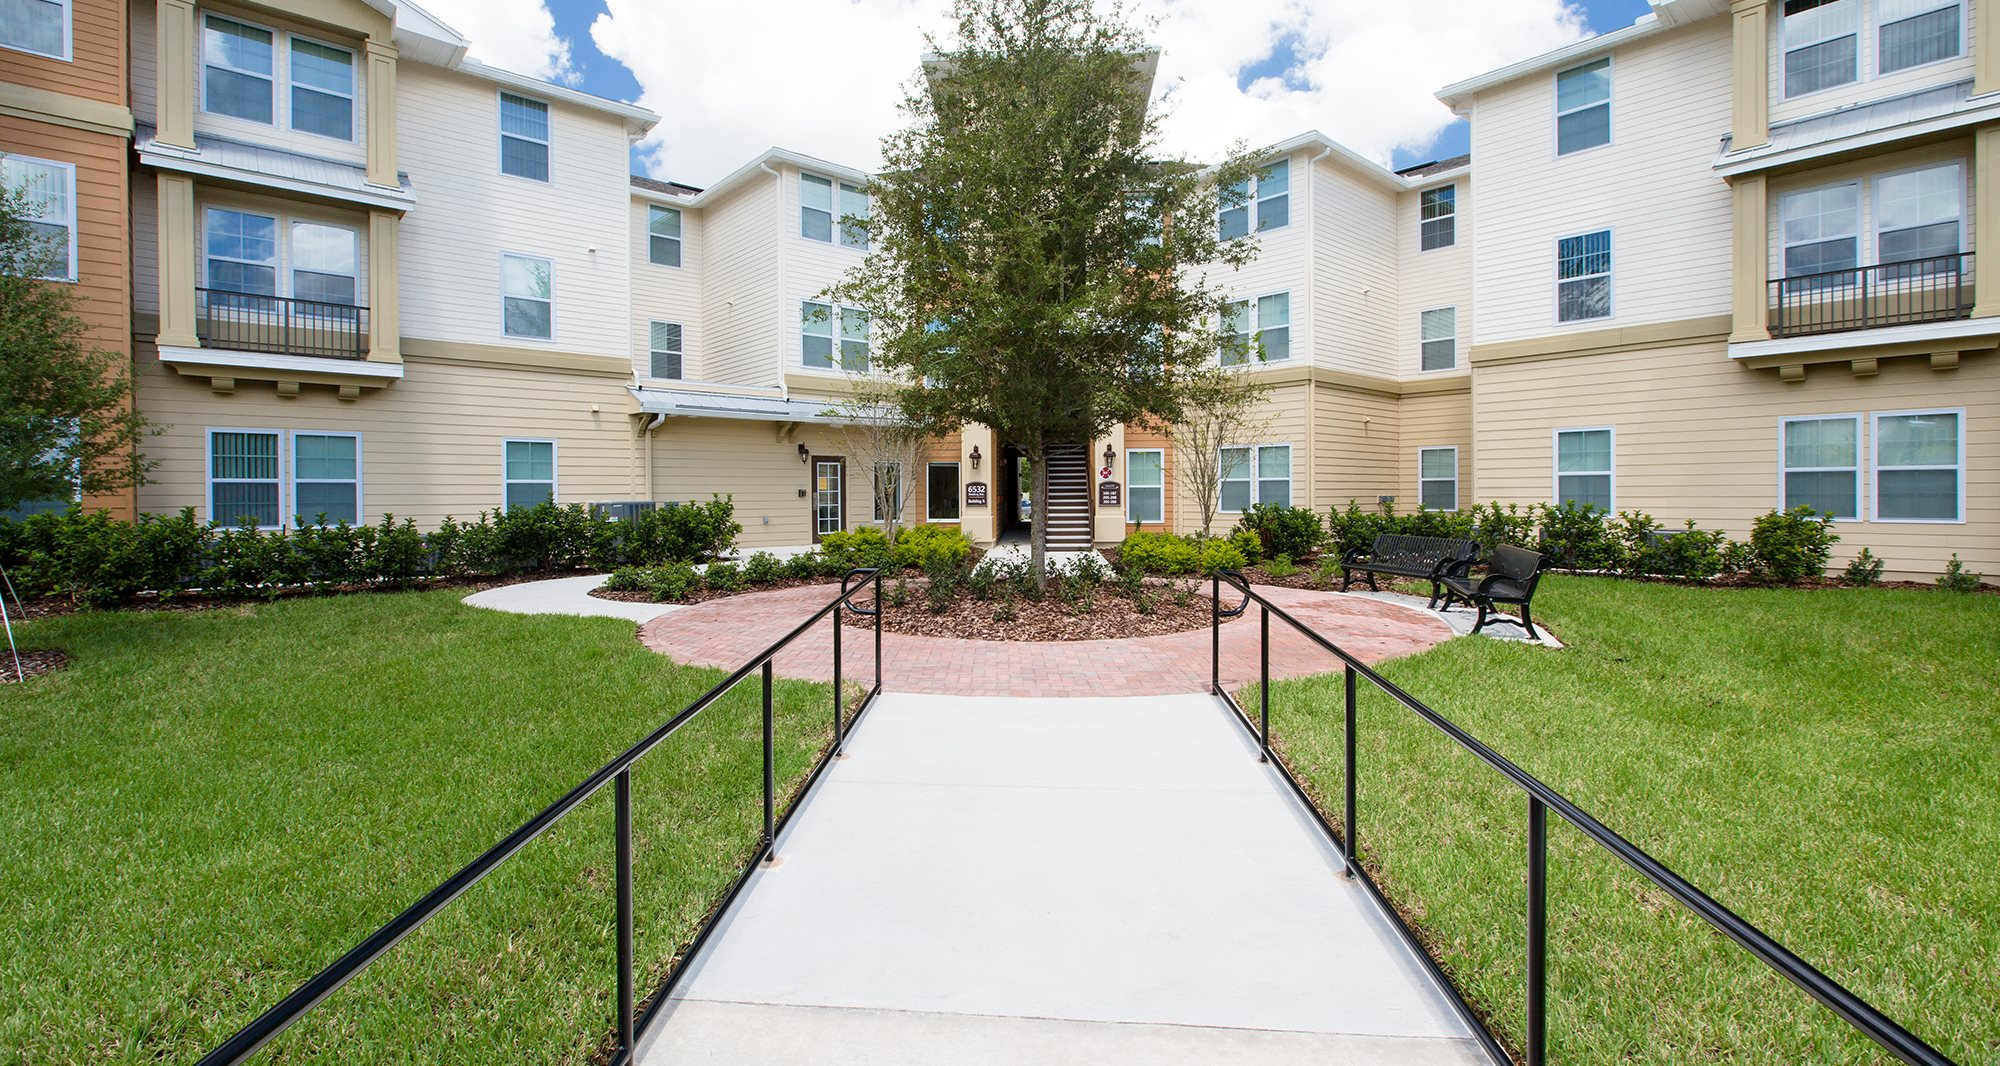 Fountains at Lingo Cove Apartments for rent in Orlando, FL. Make this community your new home or visit other Concord Rents communities at ConcordRents.com. Building exterior